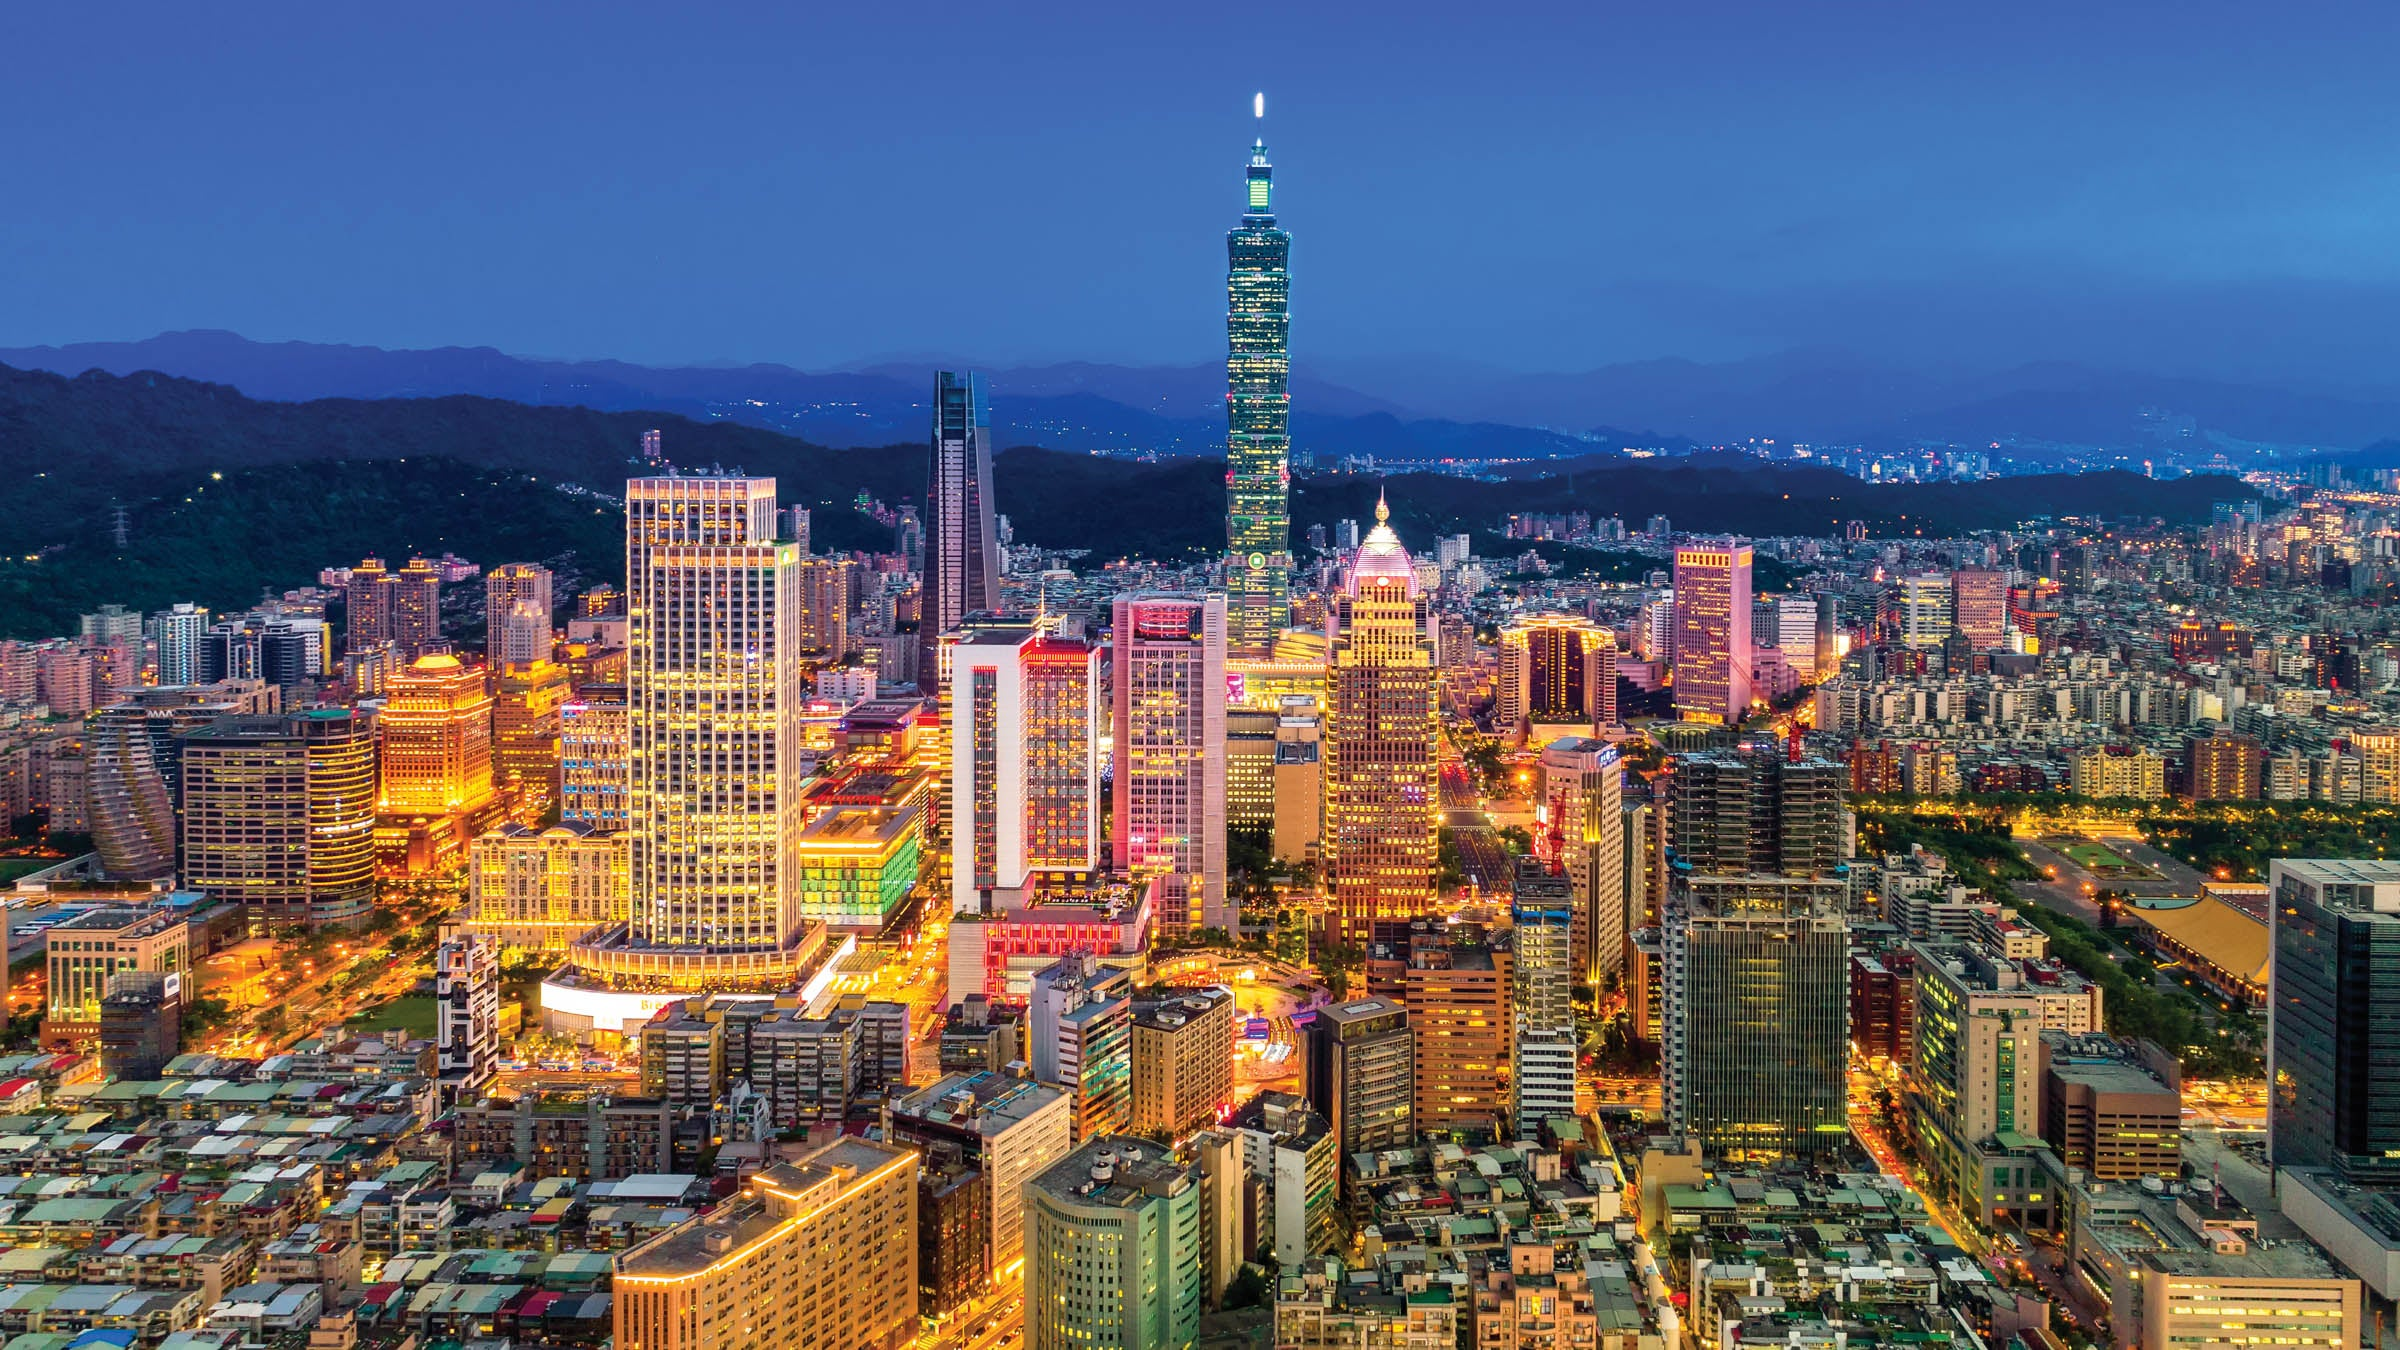 Capital city of Taiwan with view of prominent Taipei 101 Tower and busy street in Xinyi Financial District